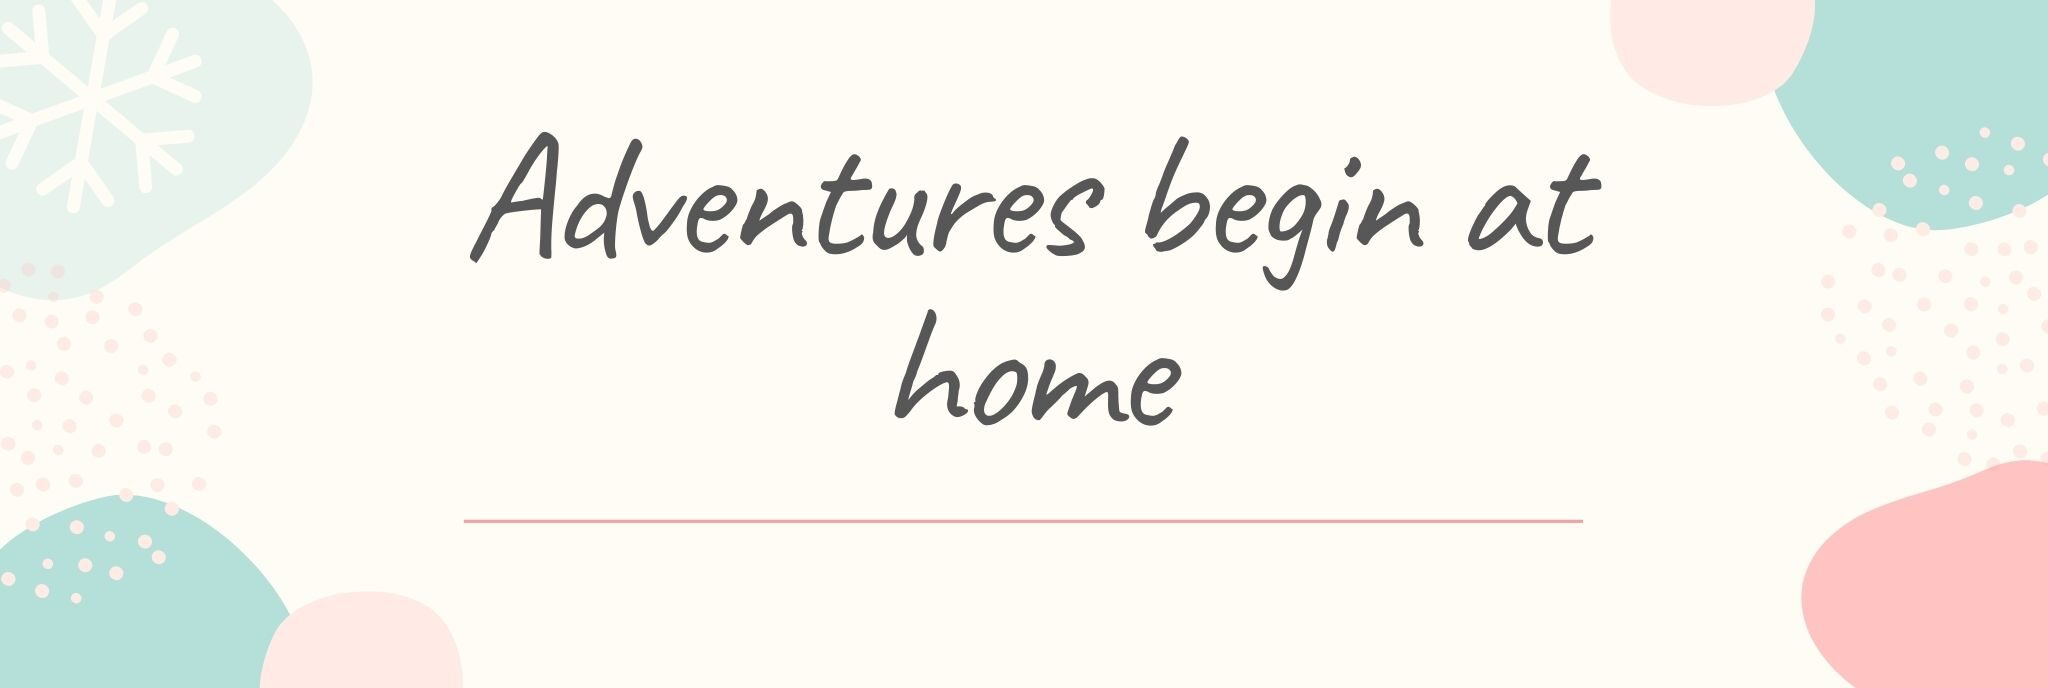 Adventures begin at home